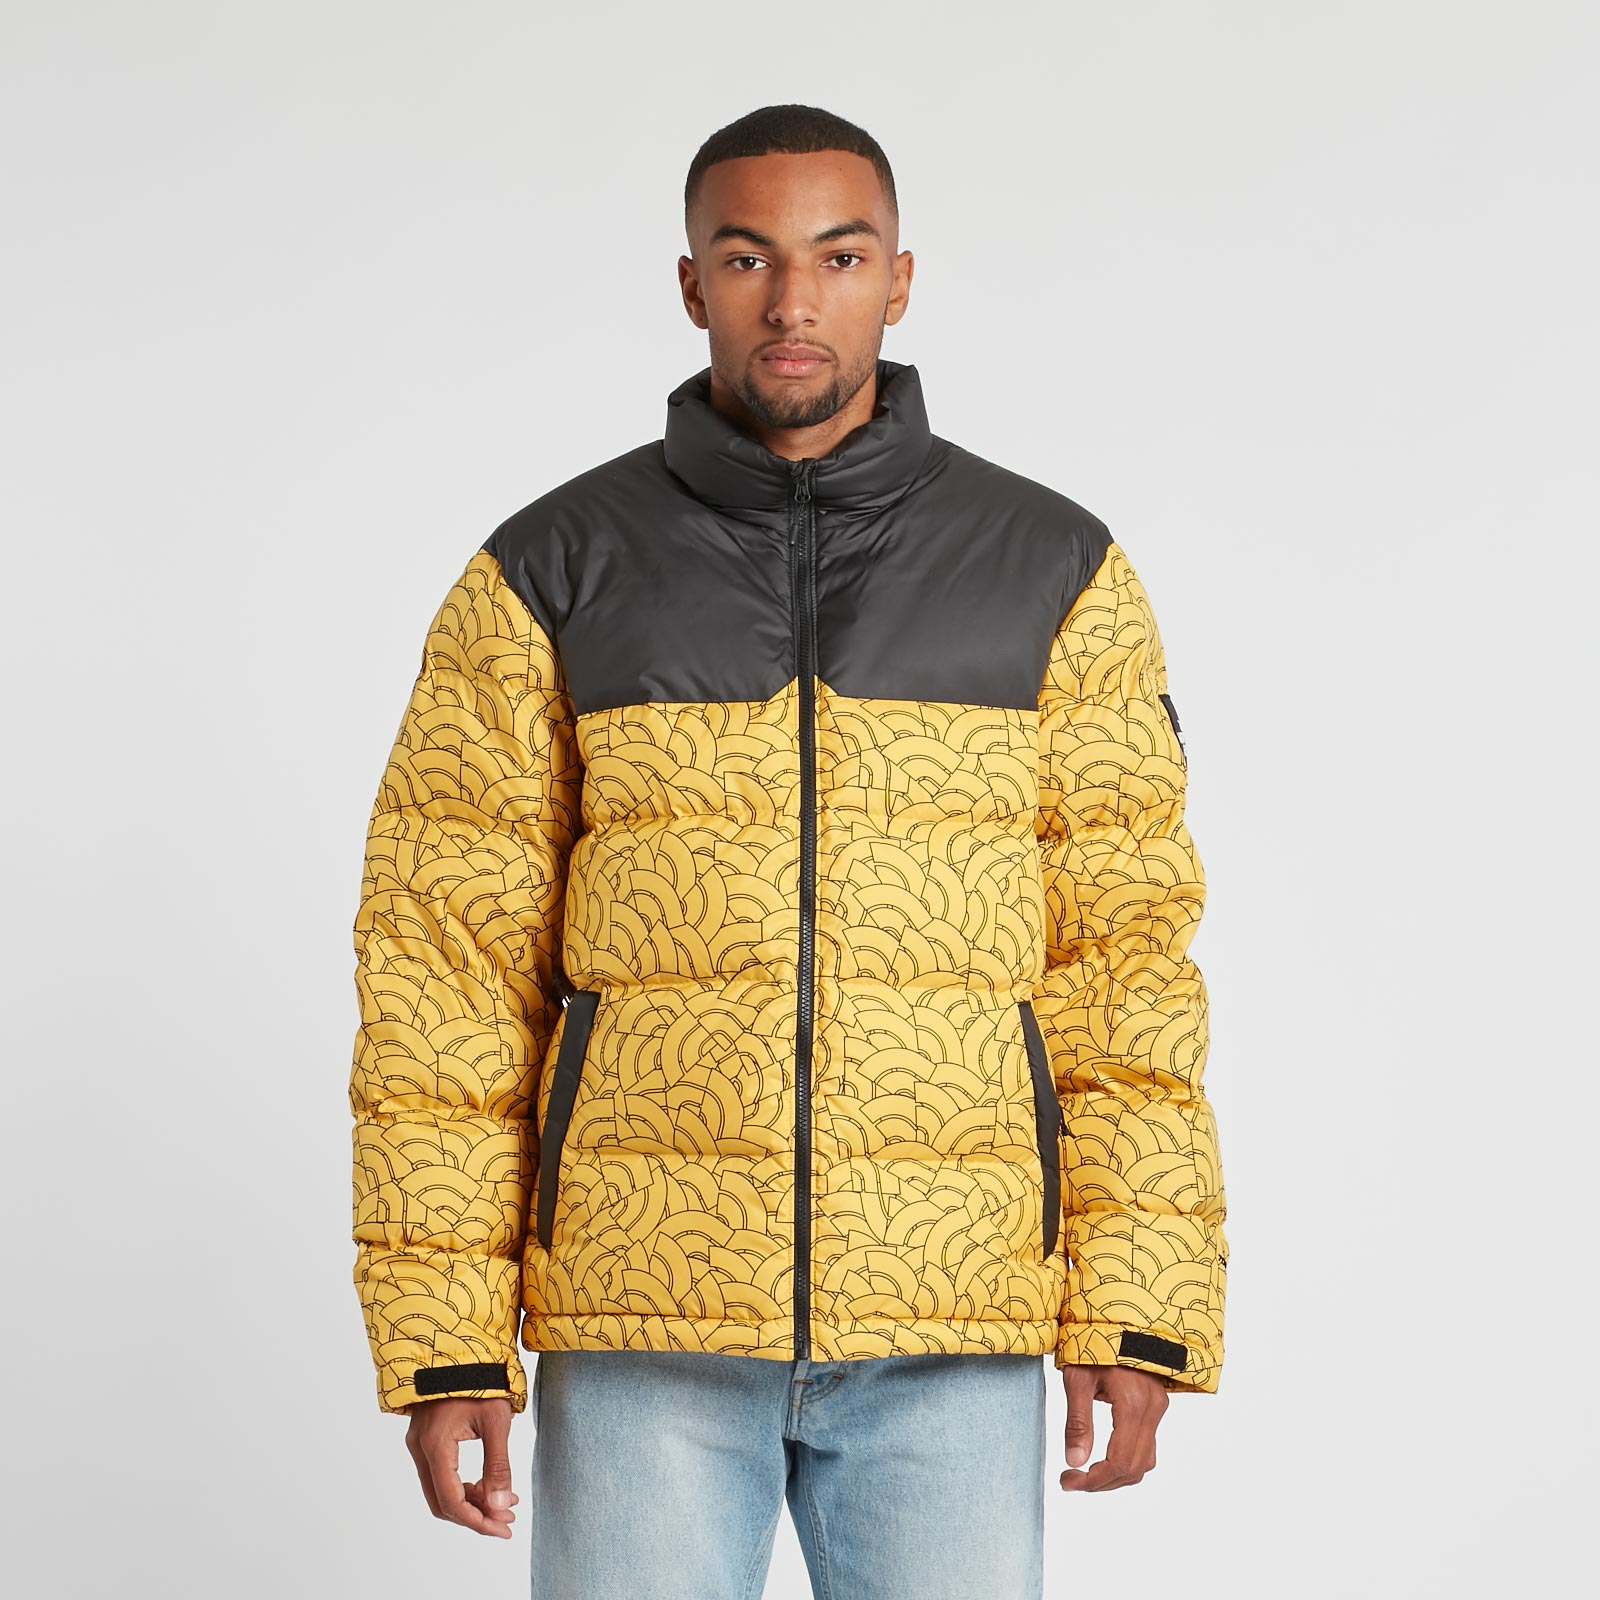 7cdc3fa37 The North Face M 1992 Nuptse Jacket - T92zwewwr - Sneakersnstuff ...